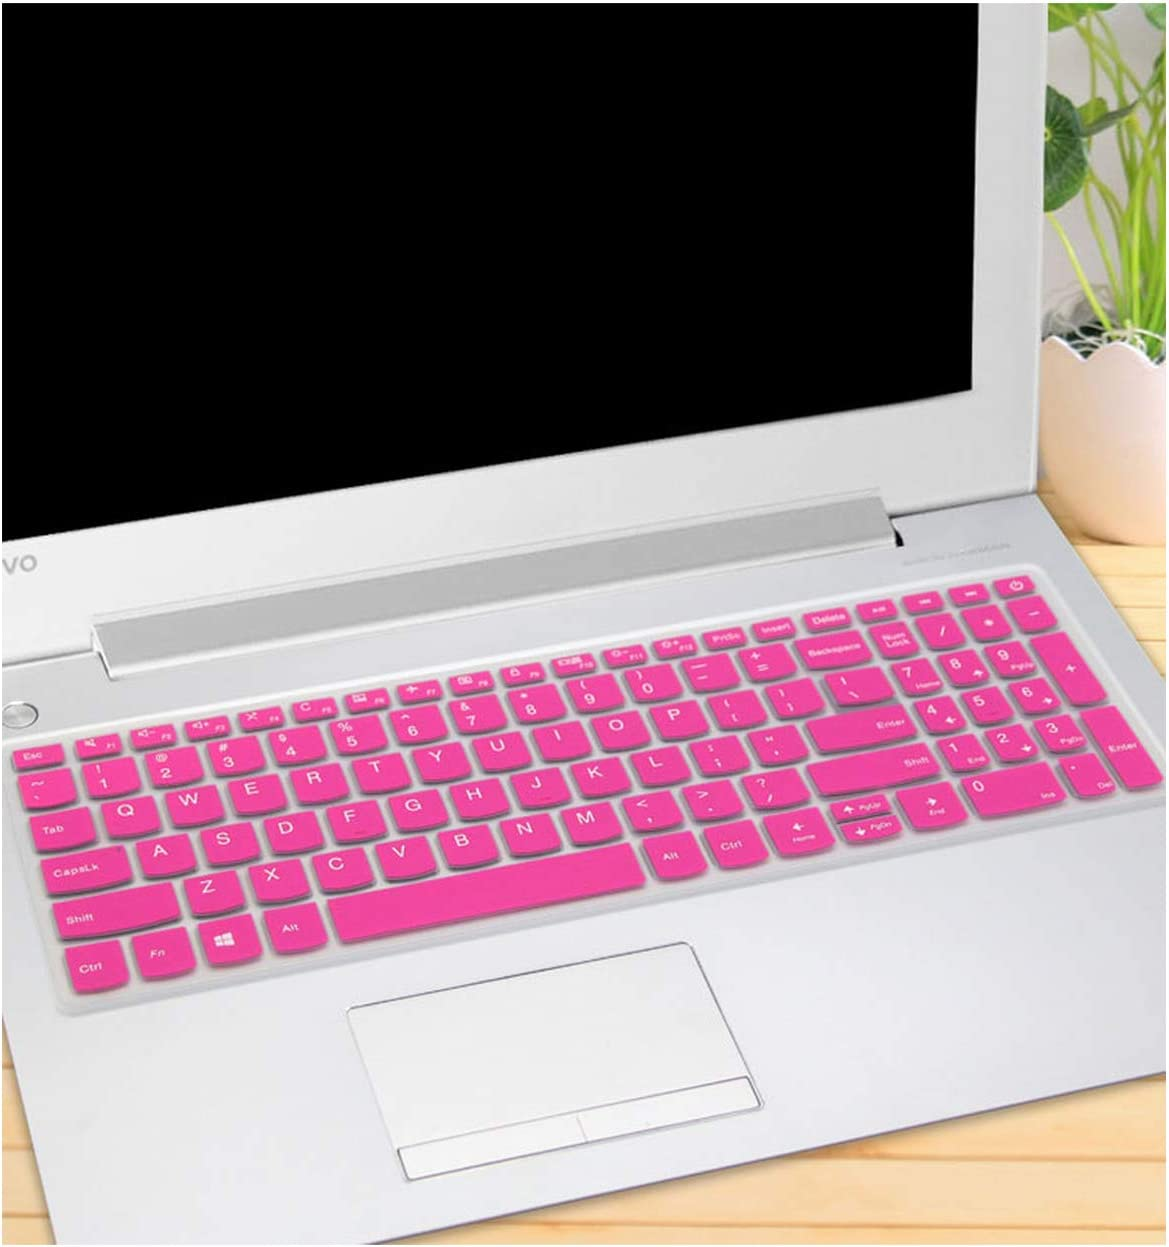 iwreuir Compatible for 15 15.6 Laptop Notebook Keyboard Cover Skin for Lenovo Ideapad L340 15 S340 330S 15Ikb 340C 340C 15Ikb 330C 330S 330S 15Ikb,Color 3